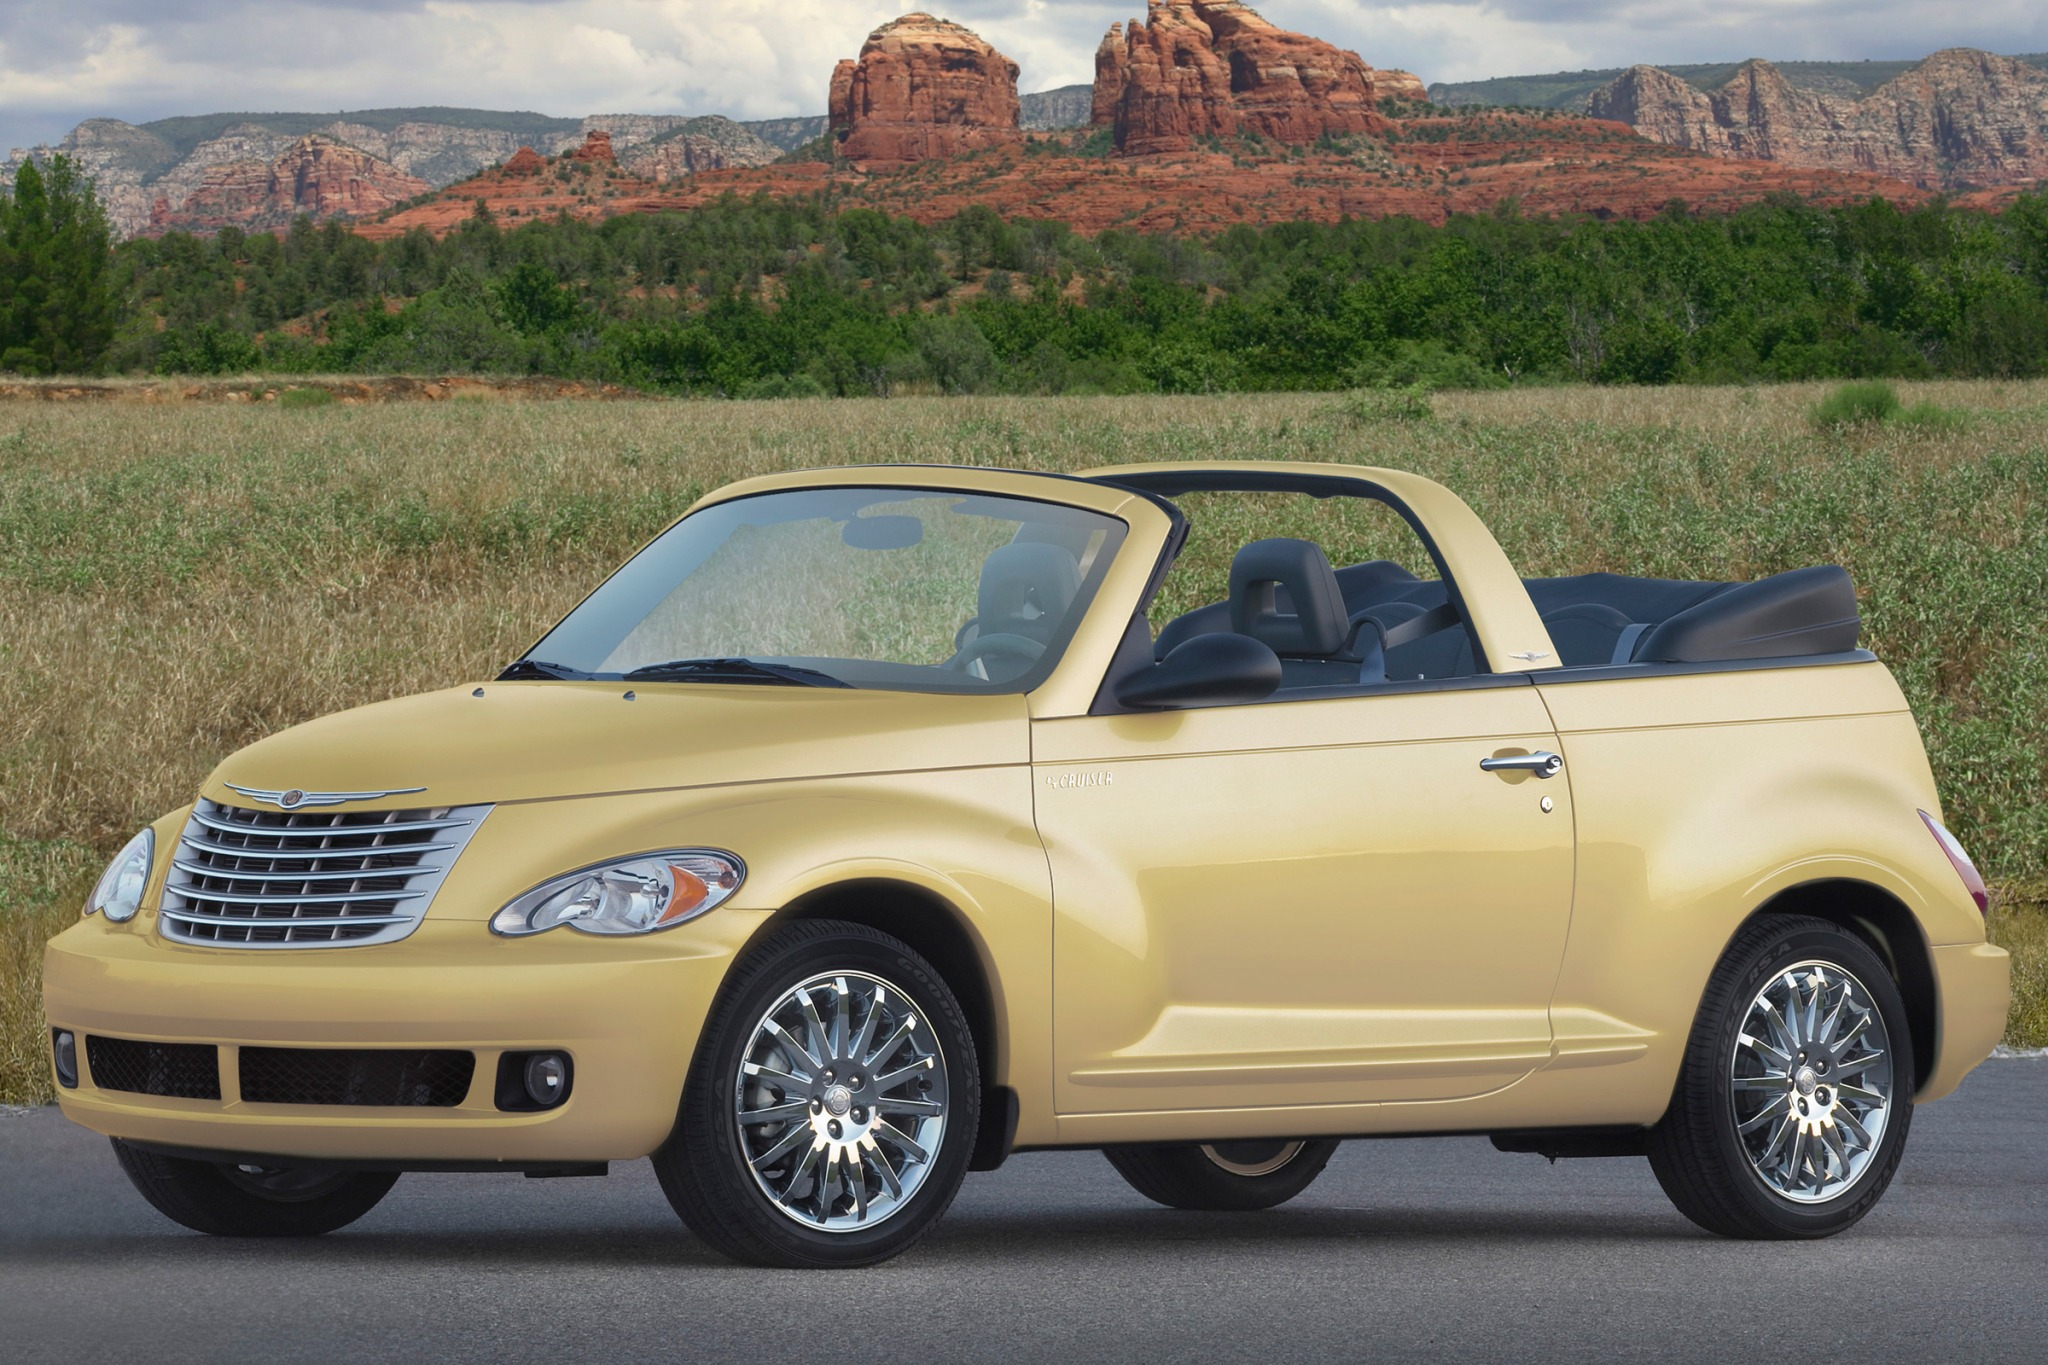 2007 Chrysler PT Cruiser  exterior #3